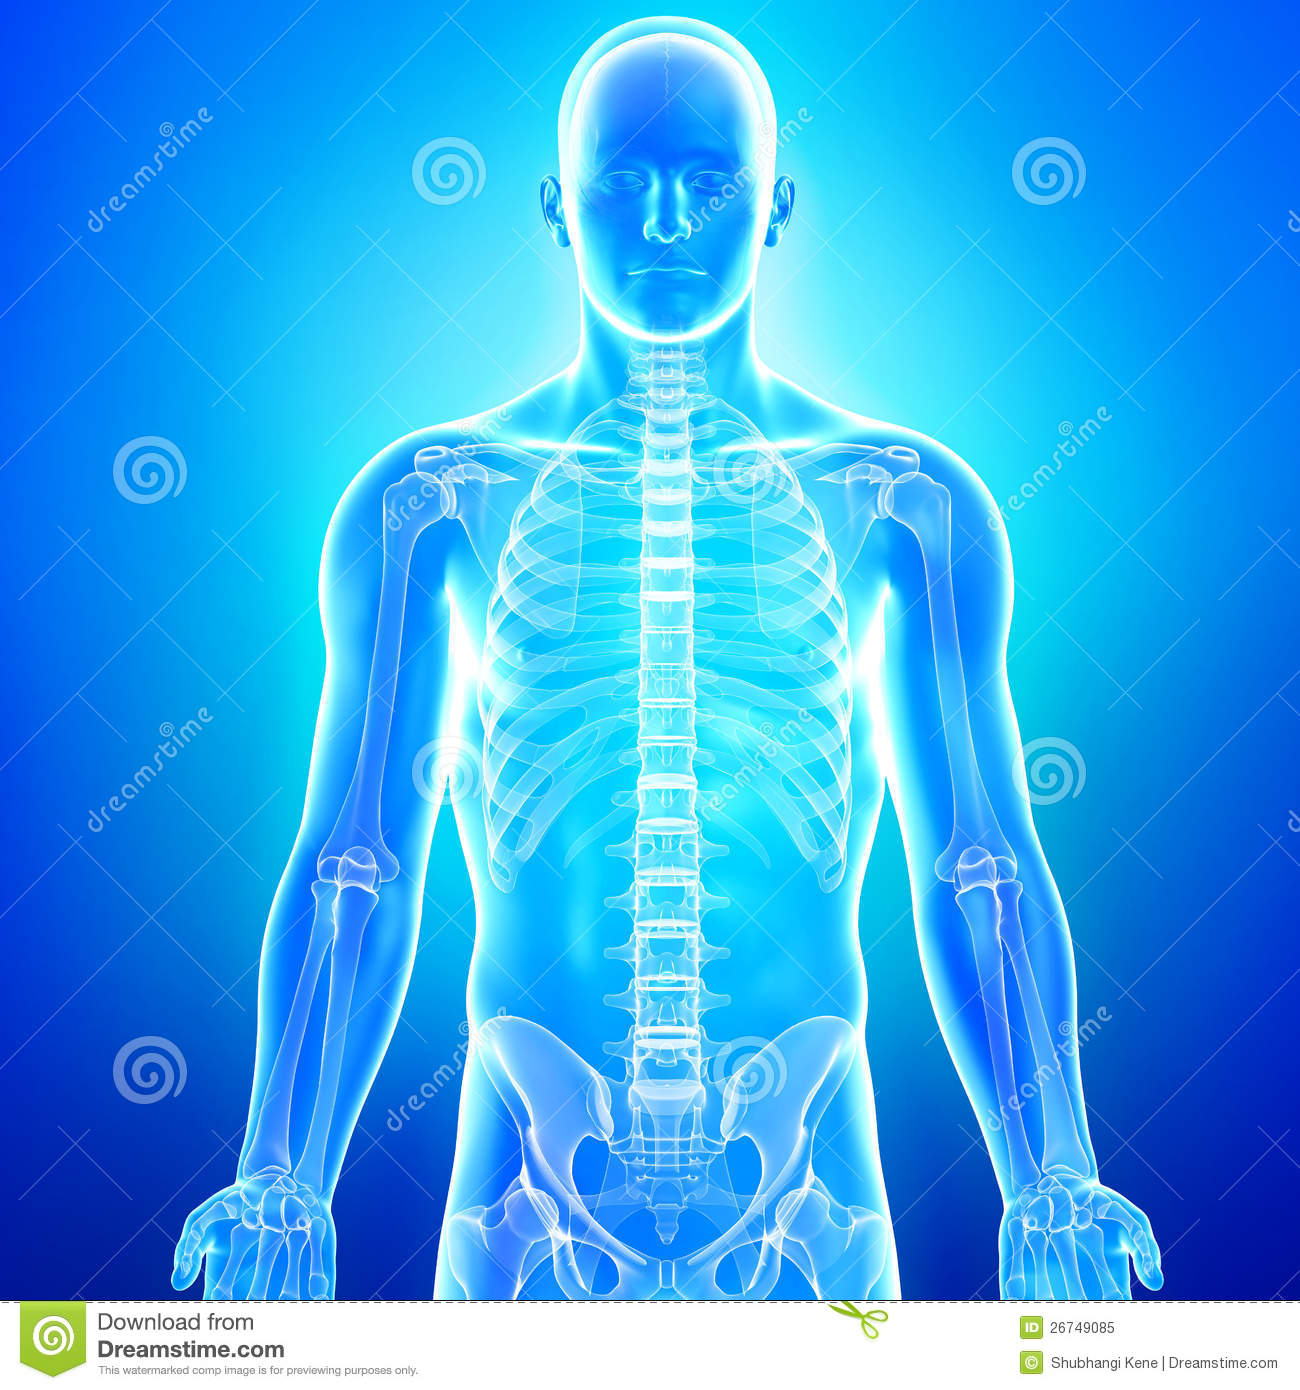 Anatomy Of Human Body In Blue X Ray Stock Illustration